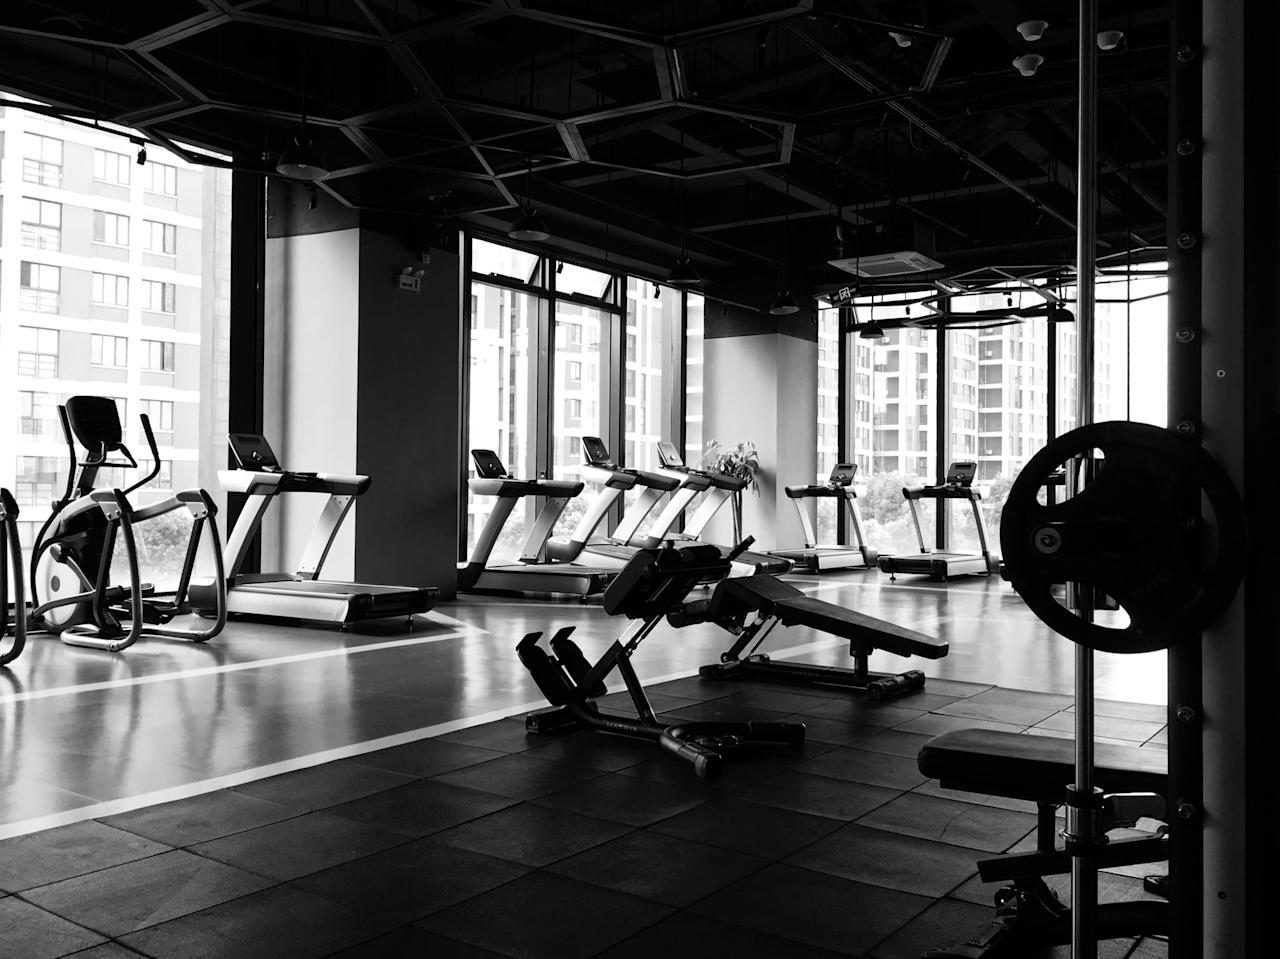 """<p>Many hotel gyms will likely remain closed, but just in case they aren't, you should still exercise outside if you can. """"If you have the opportunity to be outside, that's always preferable,"""" said Rogers. """"If the weather is nice, ask the hotel ahead of time about popular hiking trails or go swimming at the beach instead.""""</p>"""